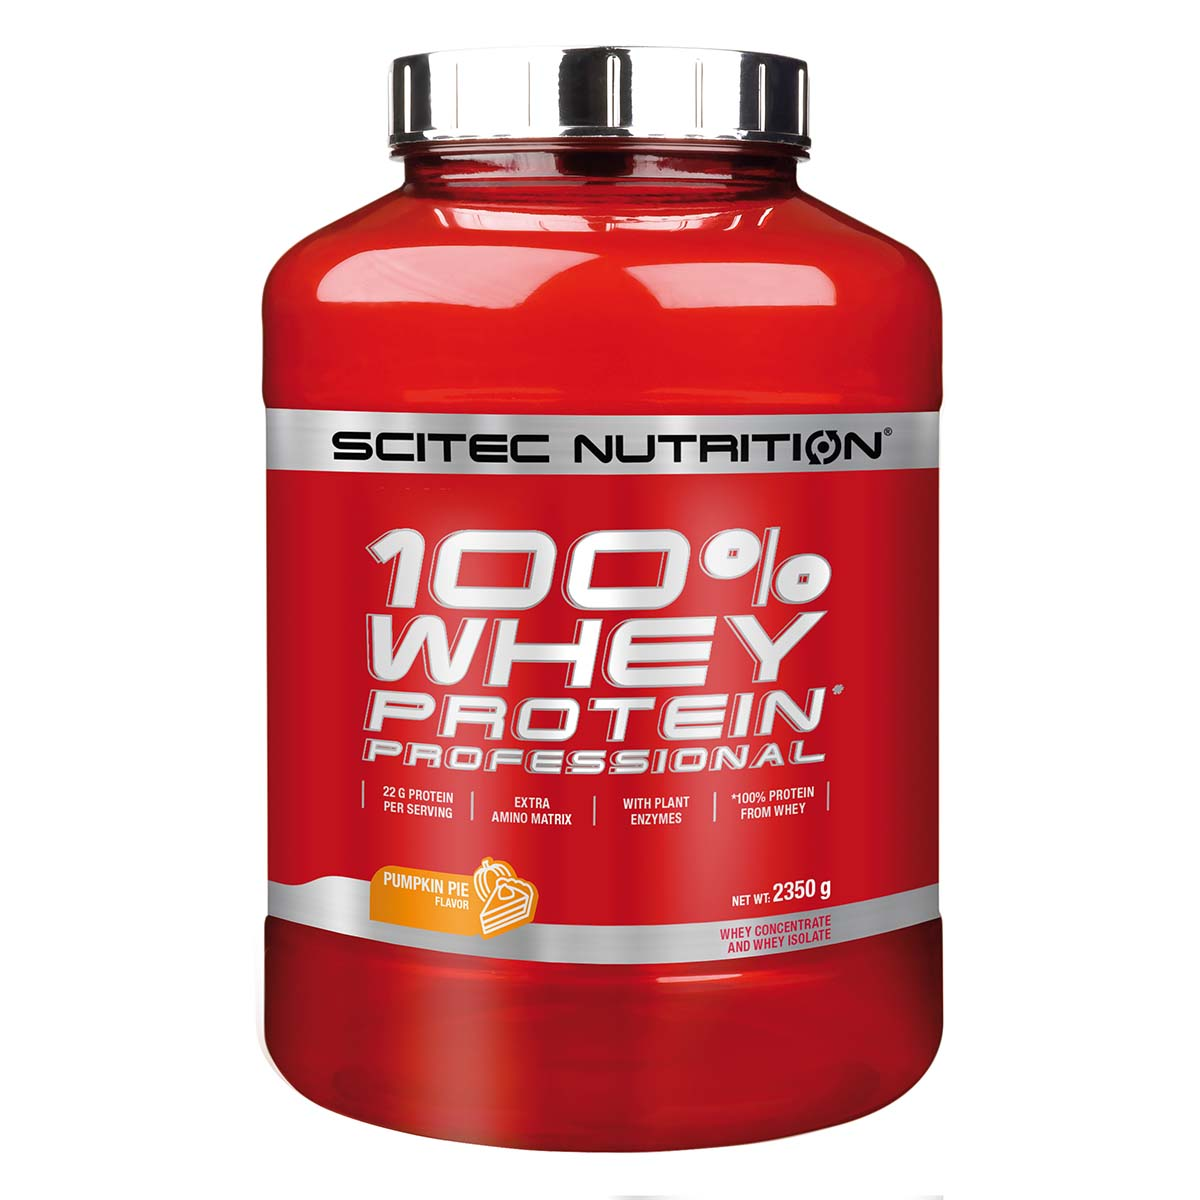 100% Whey Protein Professional Autumn Edition, 2350g